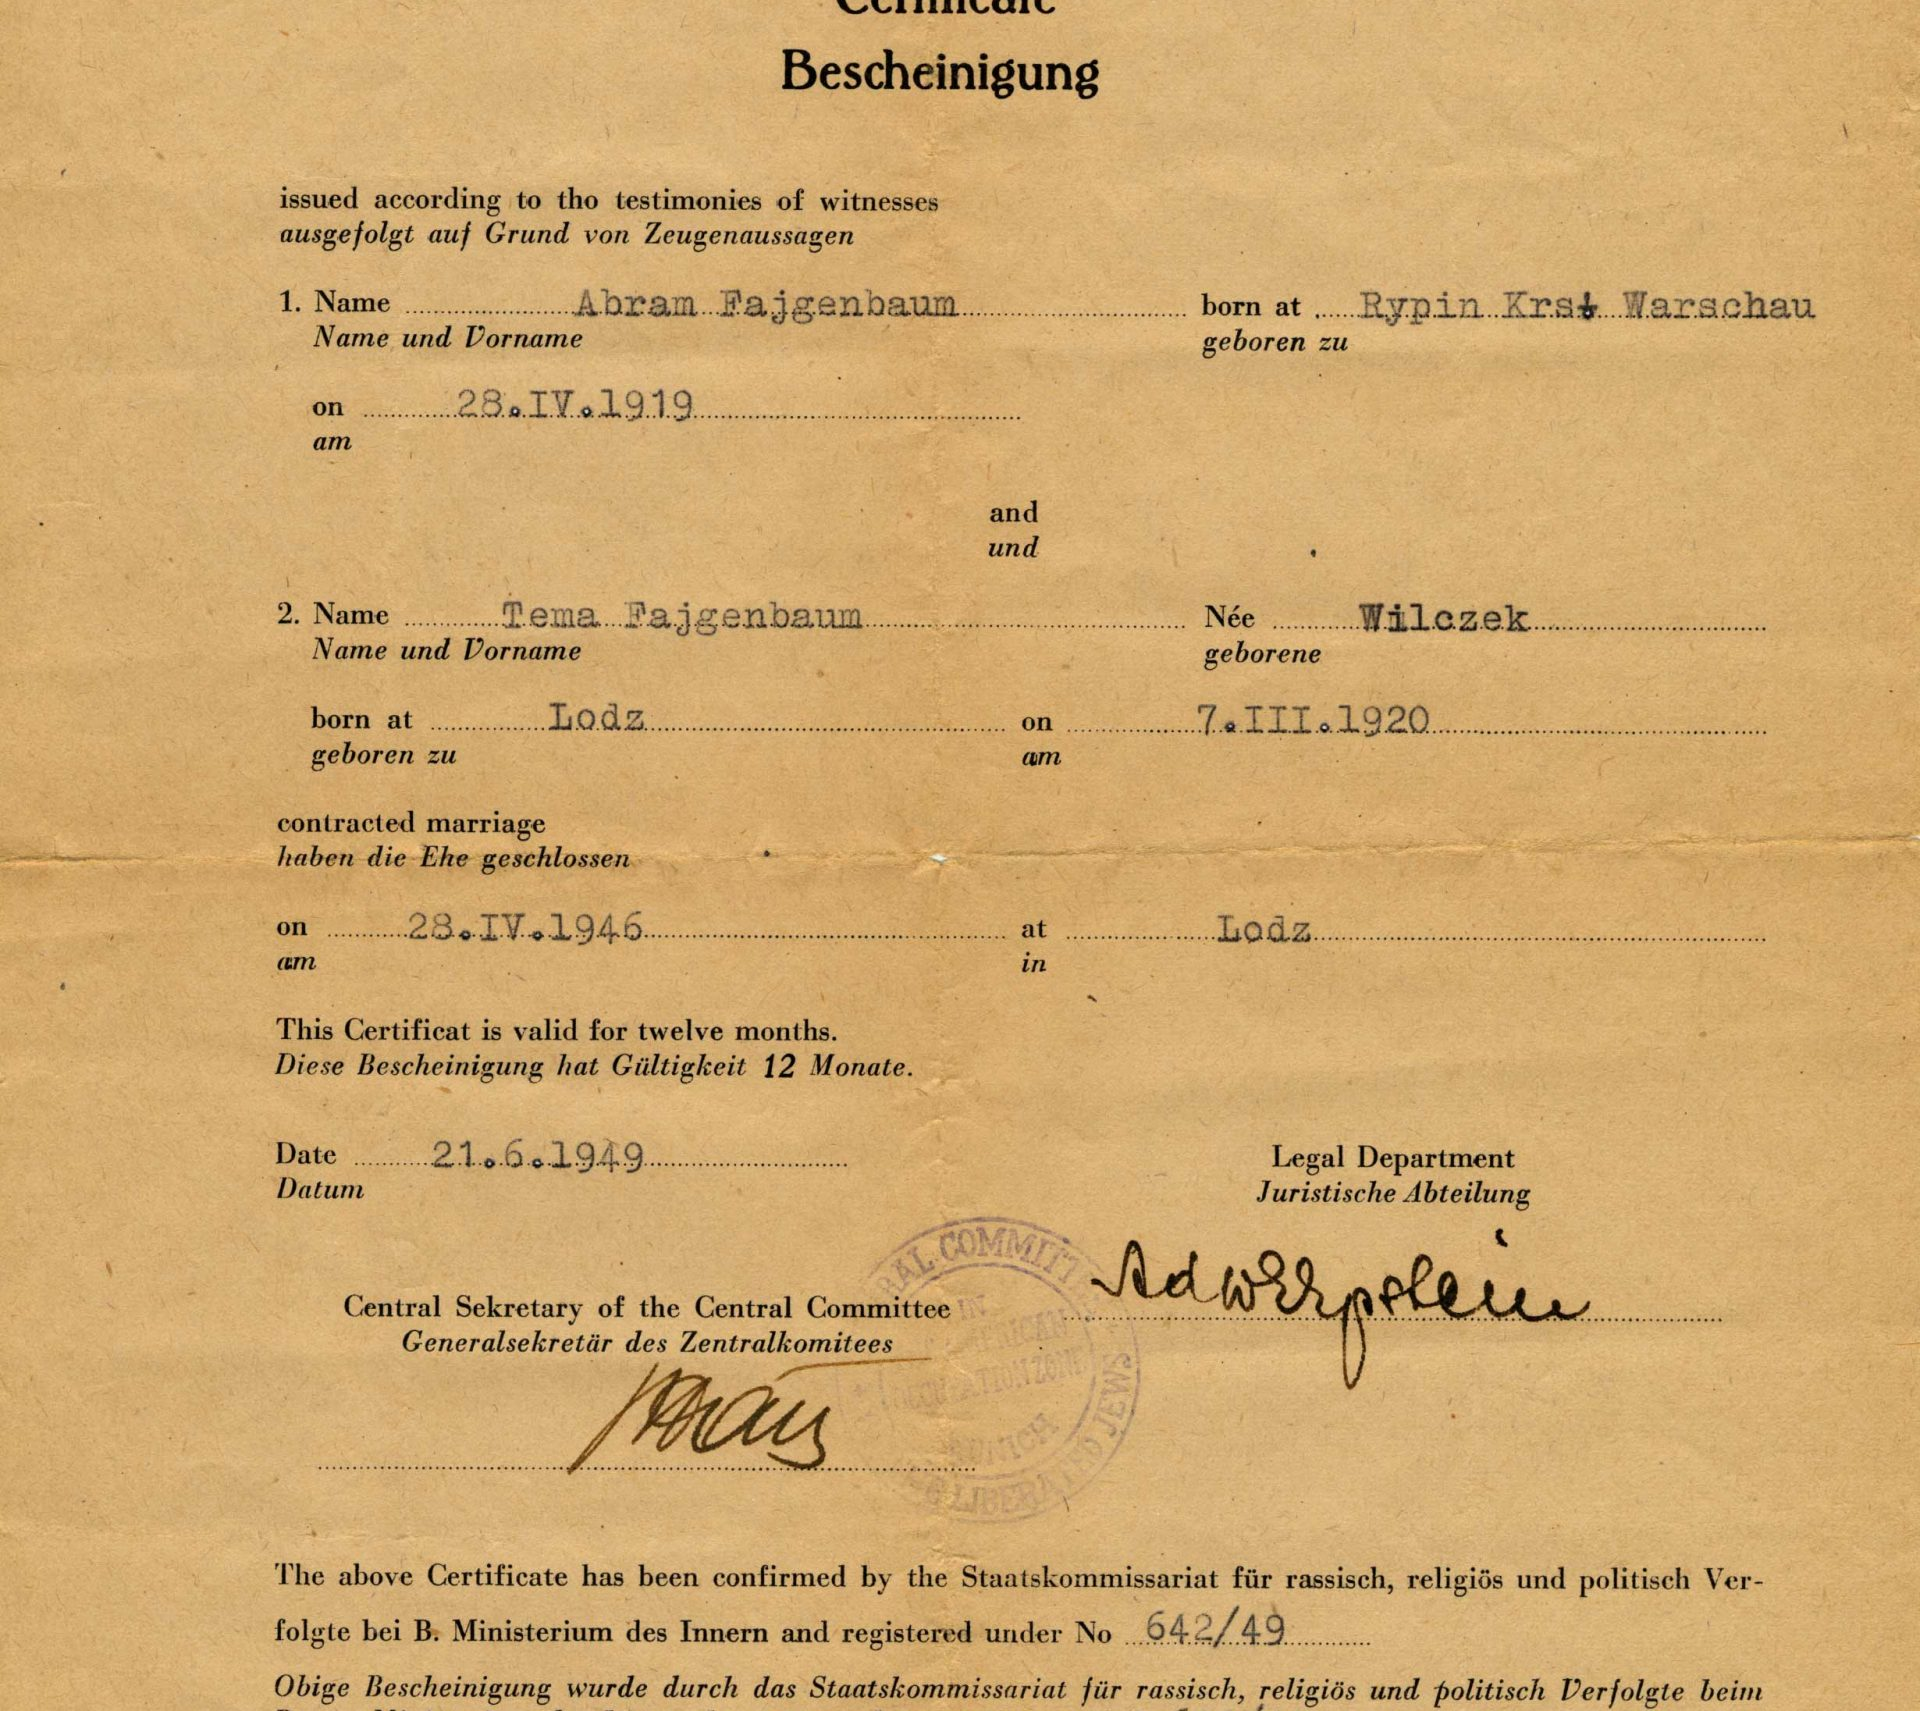 Wedding certificate of Avrum and Tola Feigenbaum, who were married in Lodz in 1946.